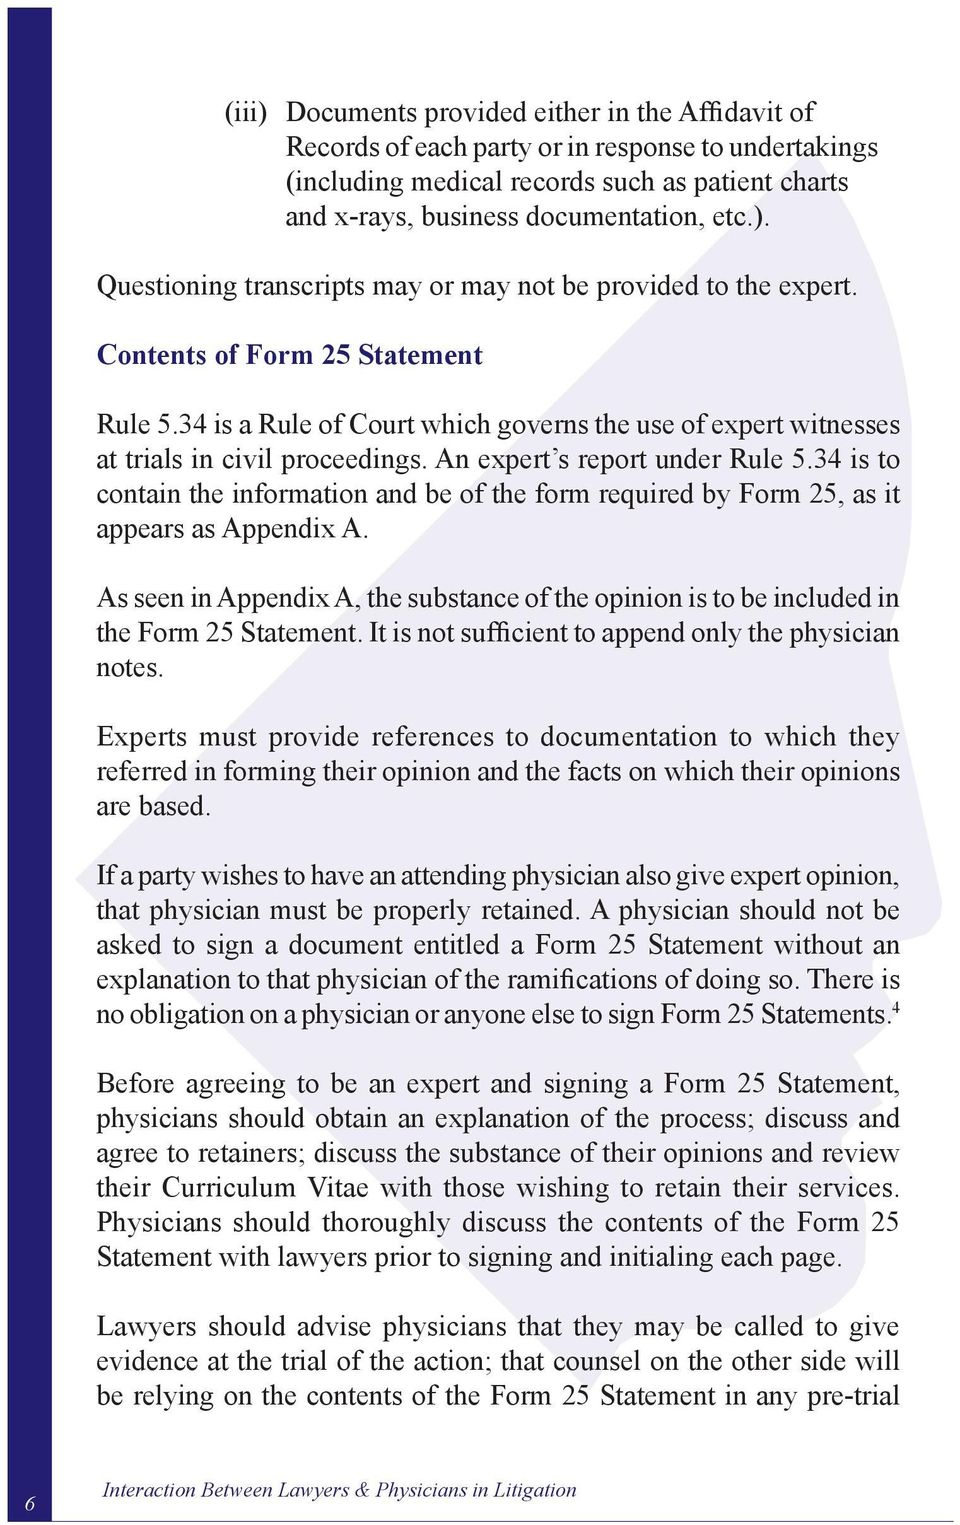 34 is to contain the information and be of the form required by Form 25, as it appears as Appendix A. As seen in Appendix A, the substance of the opinion is to be included in the Form 25 Statement.